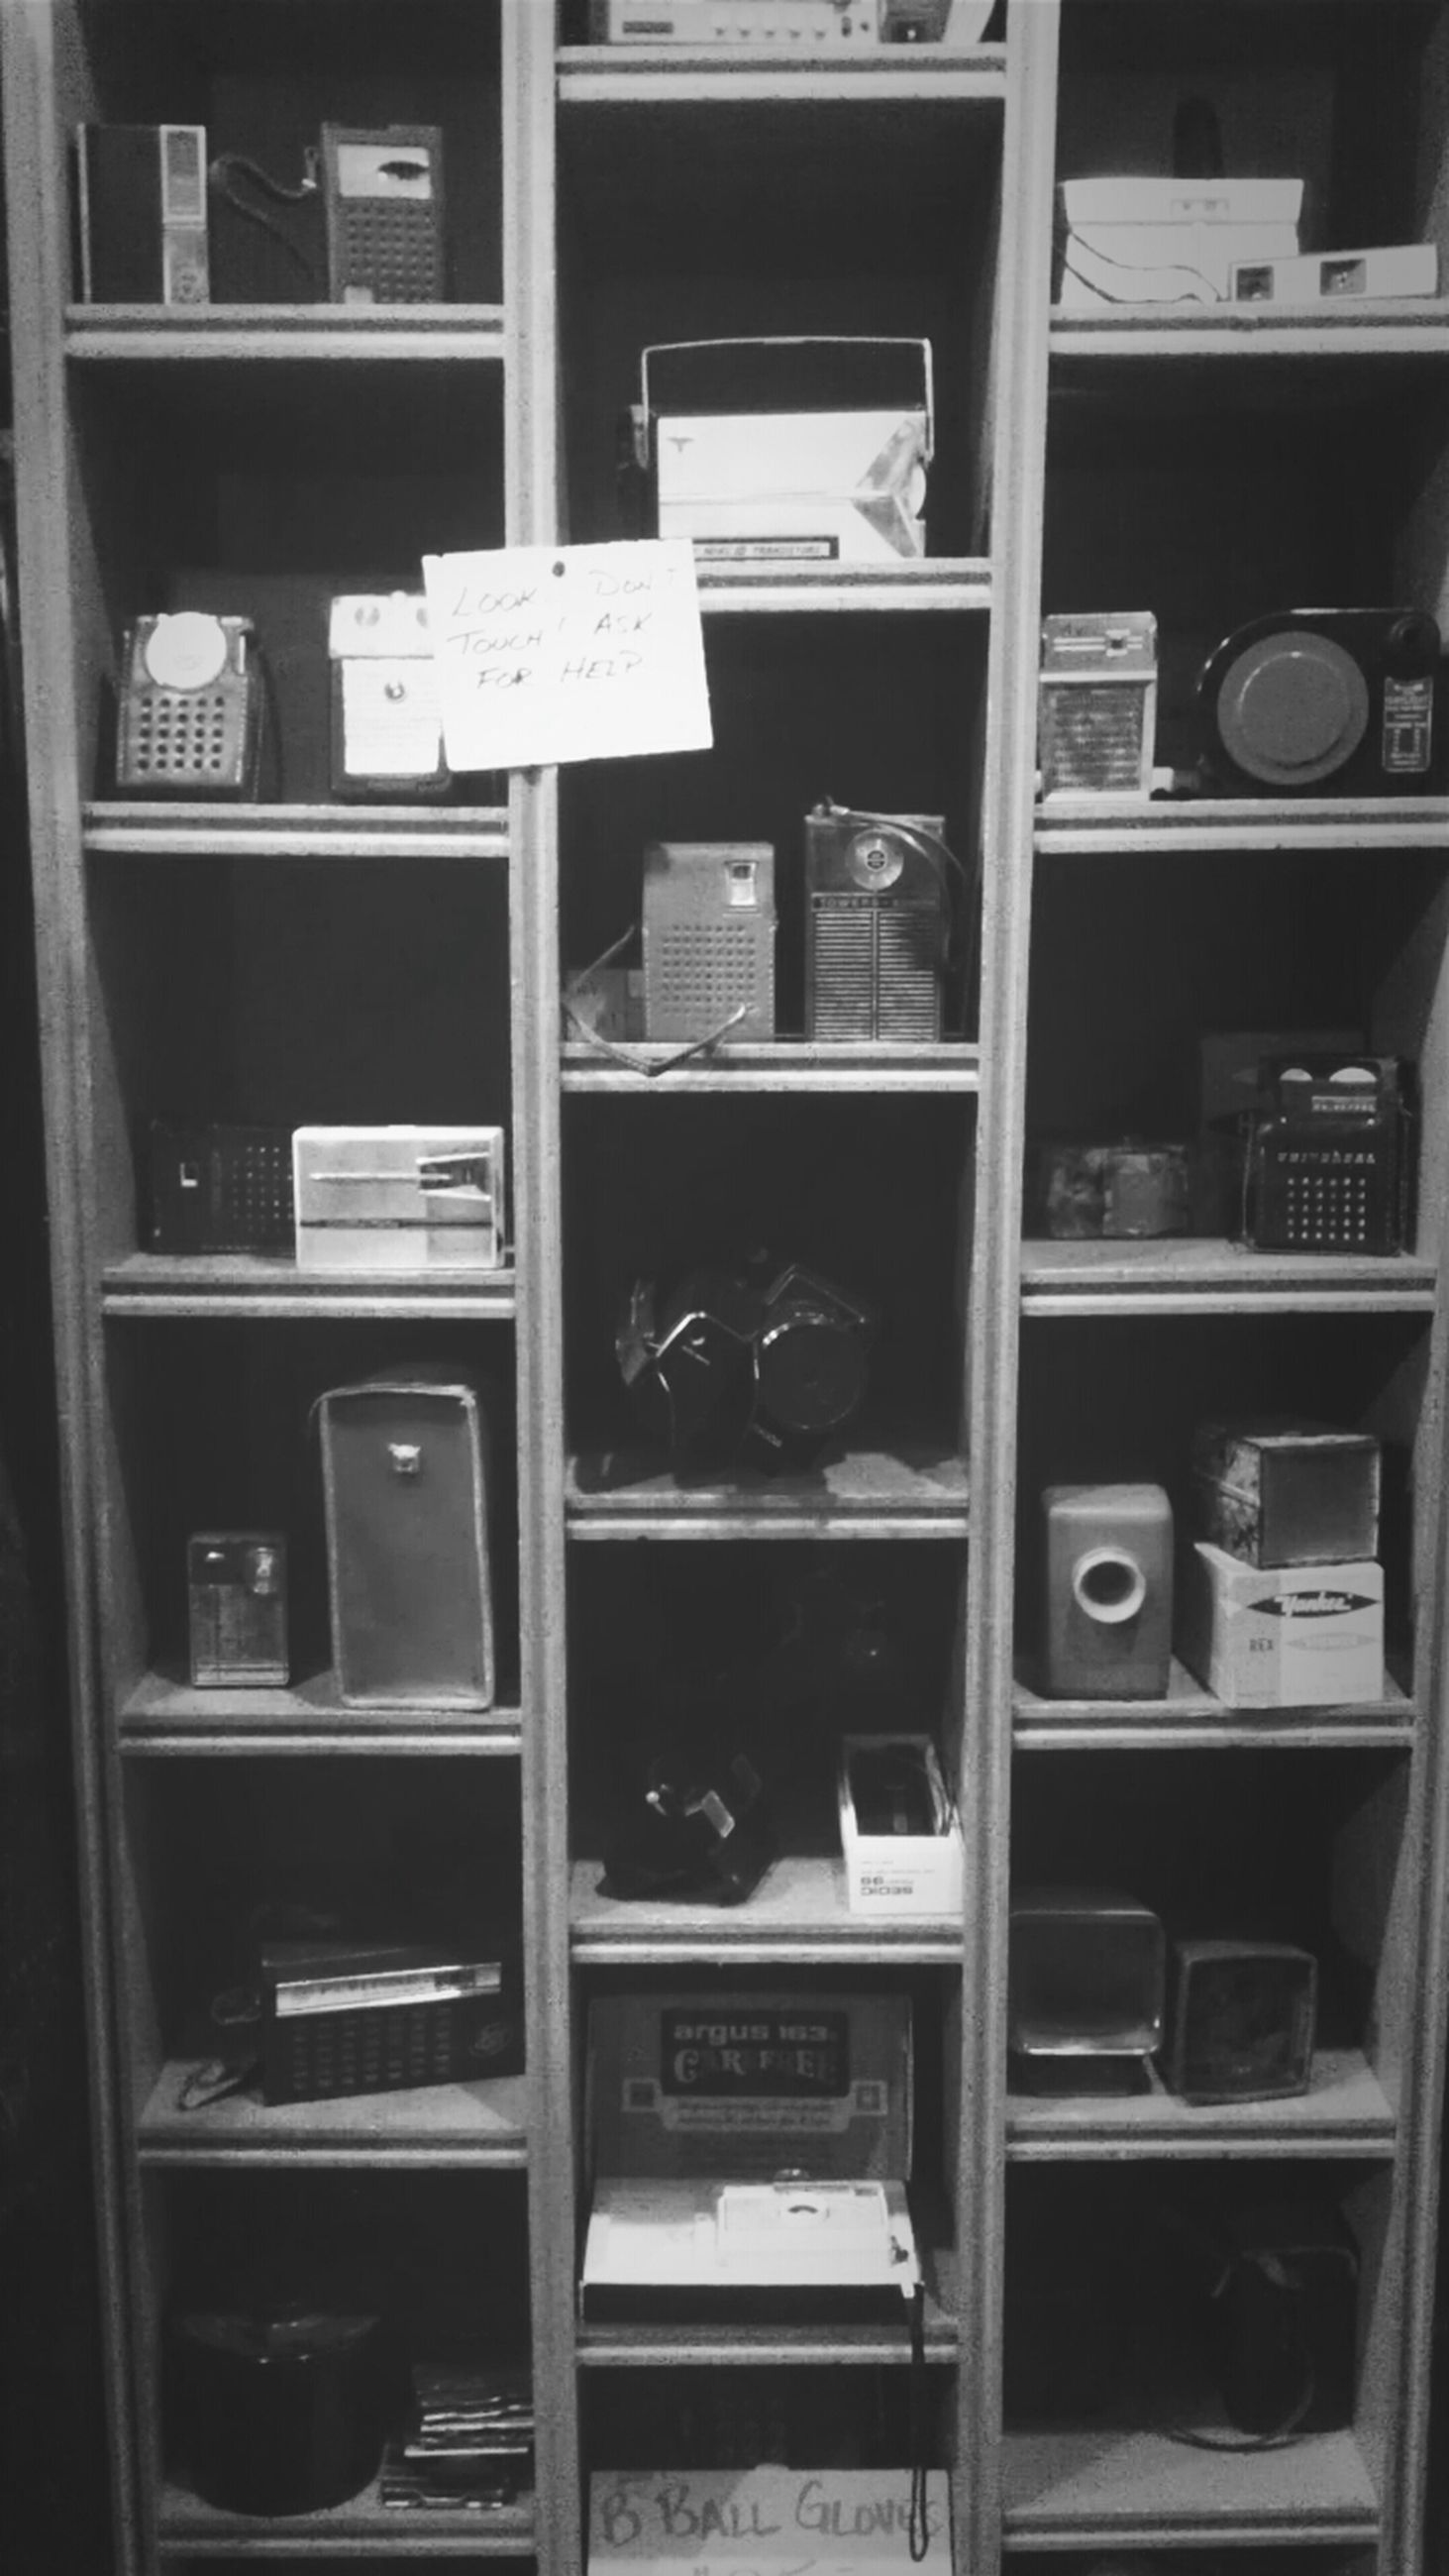 indoors, large group of objects, abundance, full frame, variation, order, in a row, shelf, arrangement, stack, backgrounds, choice, repetition, still life, collection, store, retail, no people, side by side, display